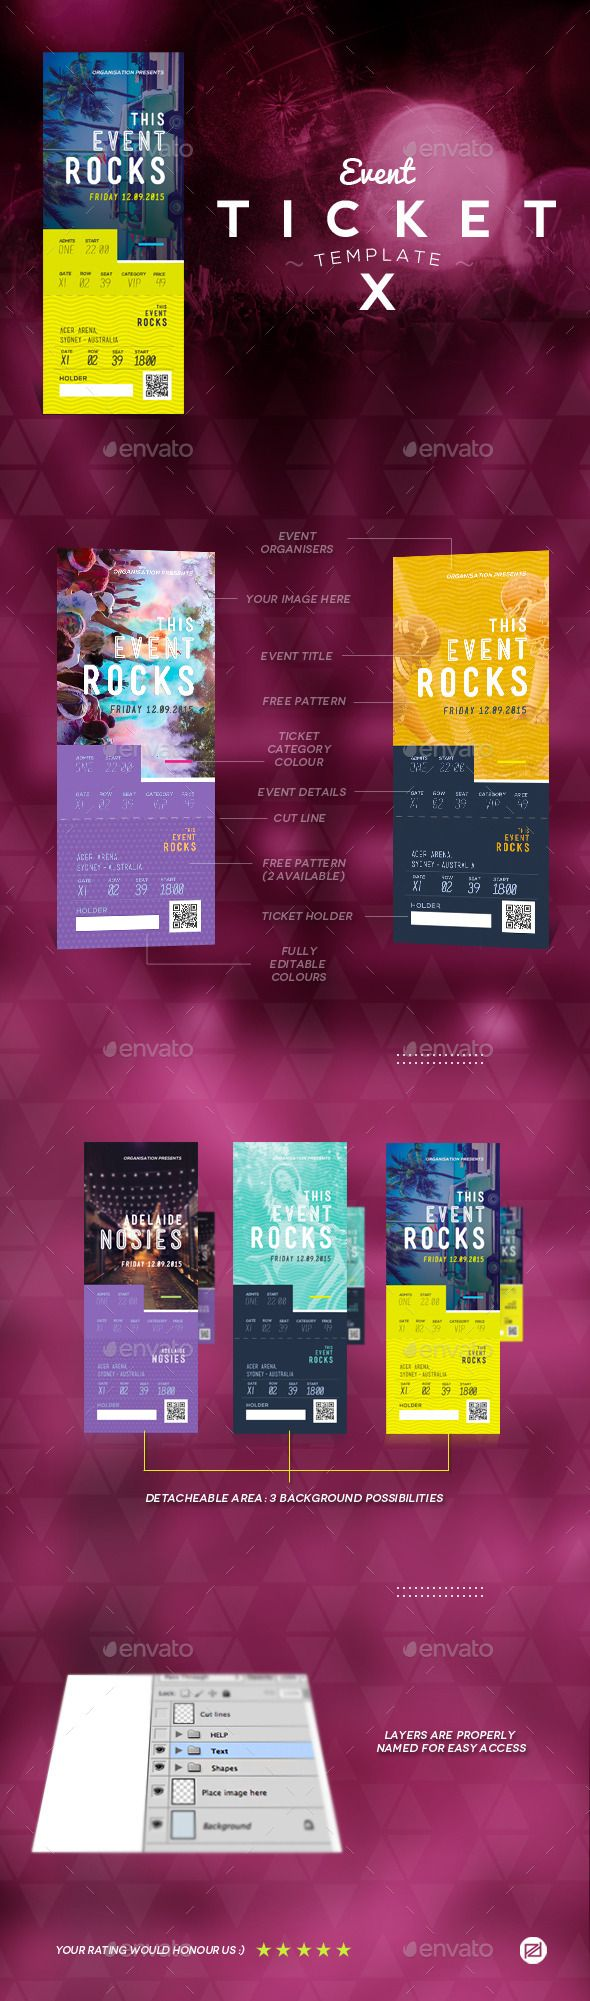 best ideas about ticket template my pics event tickets template 10